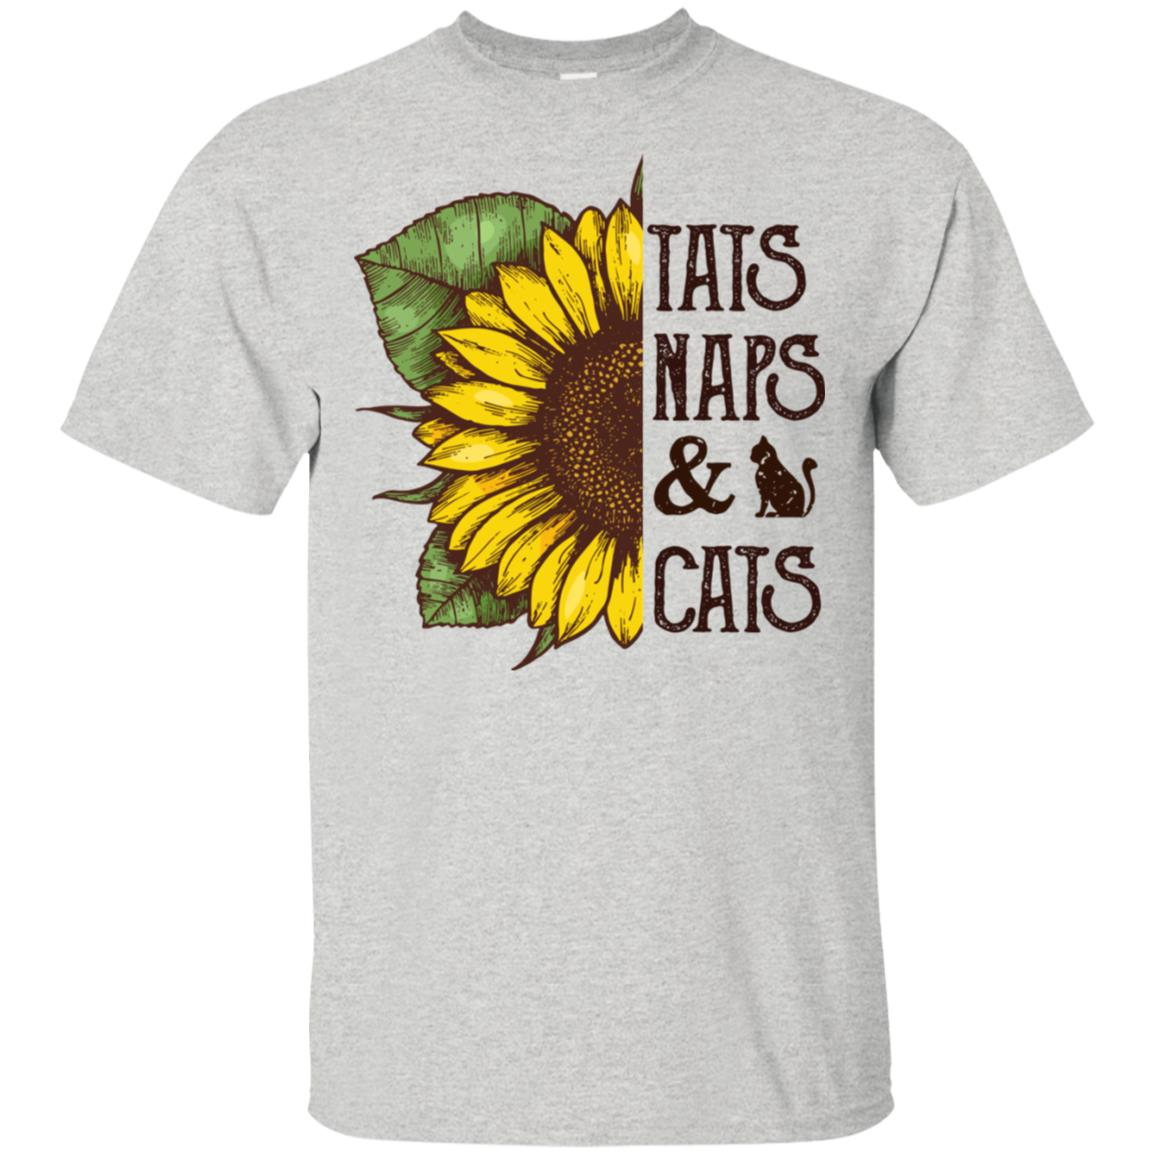 ccdccba6 Sunflower tats naps and cats t shirt, tank top, hoodie ...